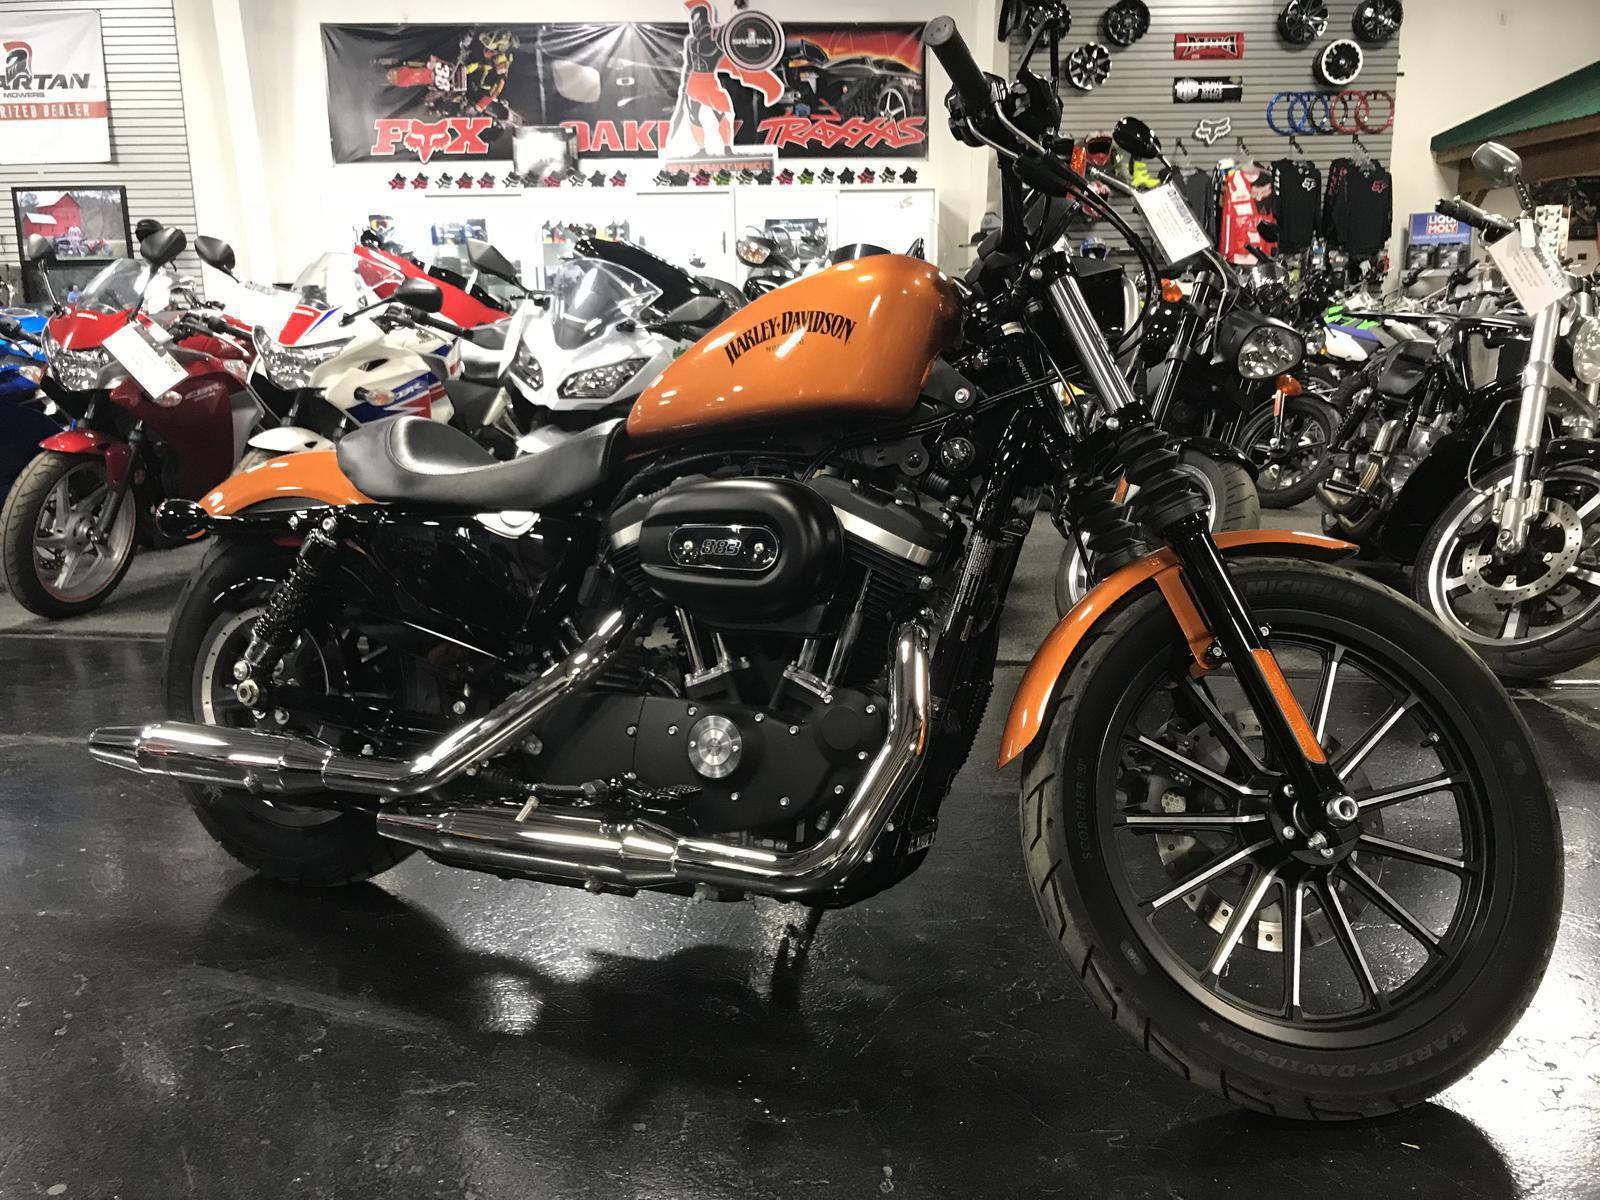 2014 Harley Davidson Xl883n Sportster I For Sale In West Plains Wire Harness A 73 Ironhead Img 4436